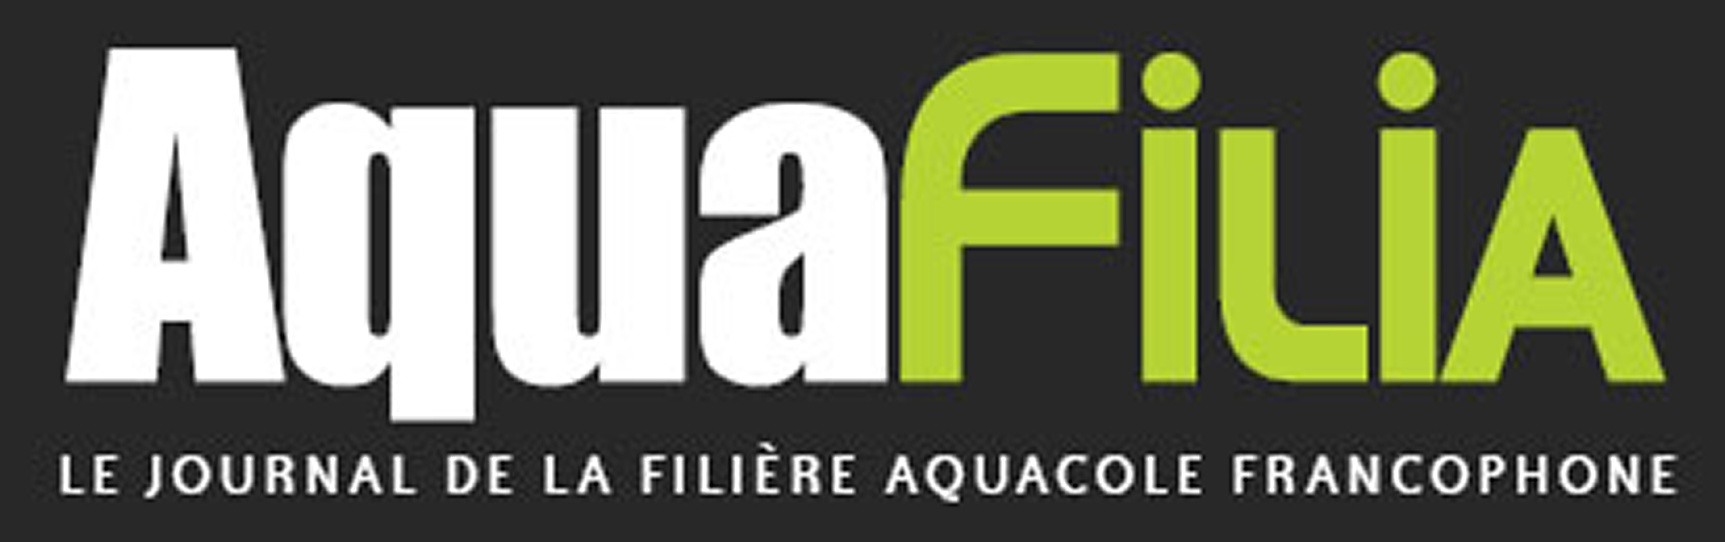 logo_AquaFilia_300_dpi_edited